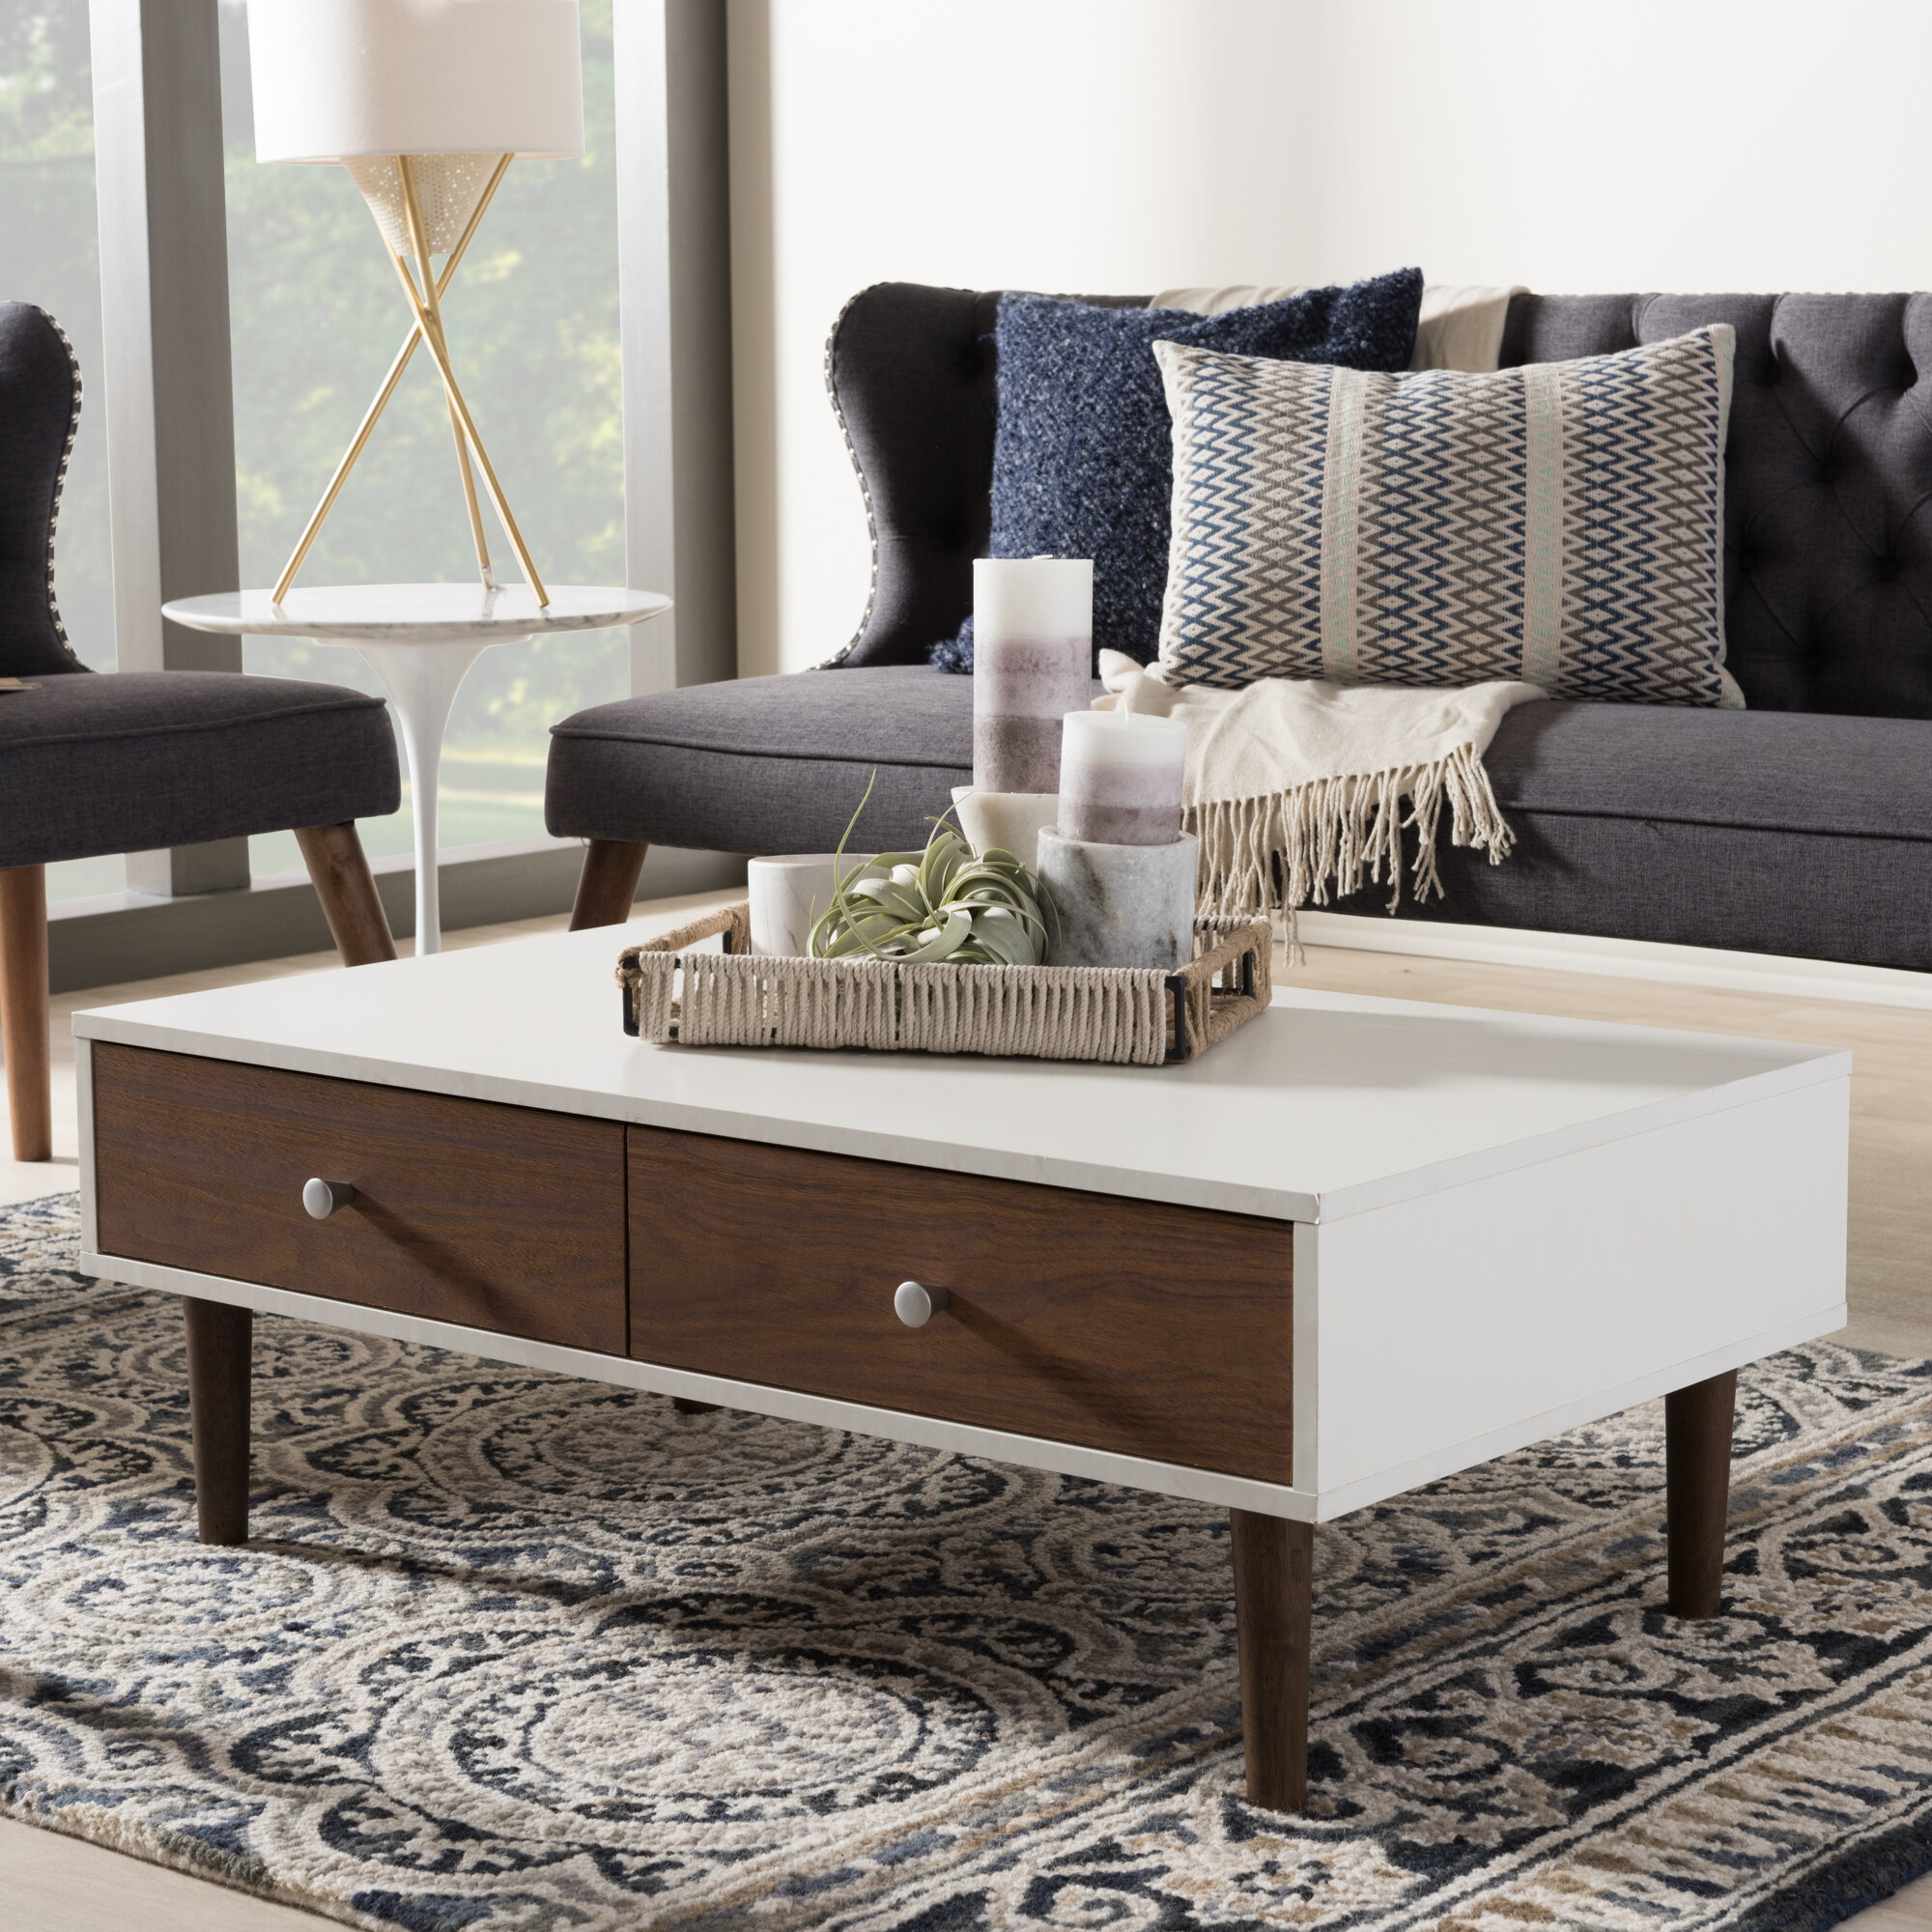 27 Eclectic Farmhouse Decor Family Rooms Coffee Tables 61: Wholesale Interiors Baxton Studio Coffee Table & Reviews